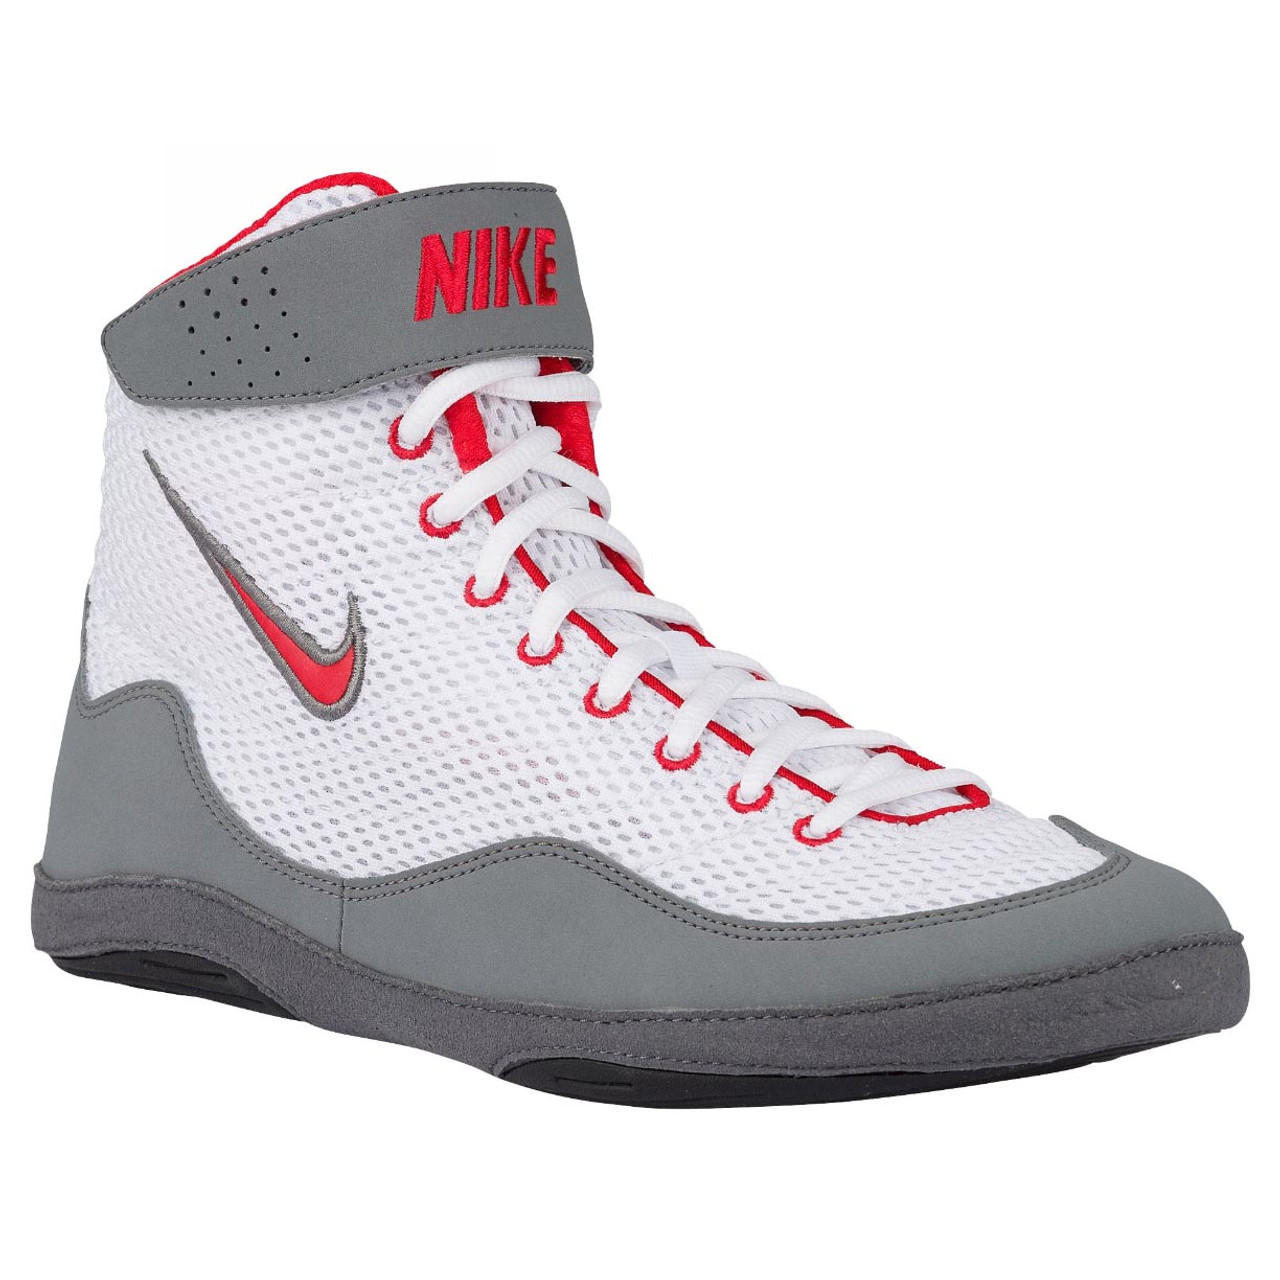 Nike Inflict 3 Training Boots White/Red/Grey